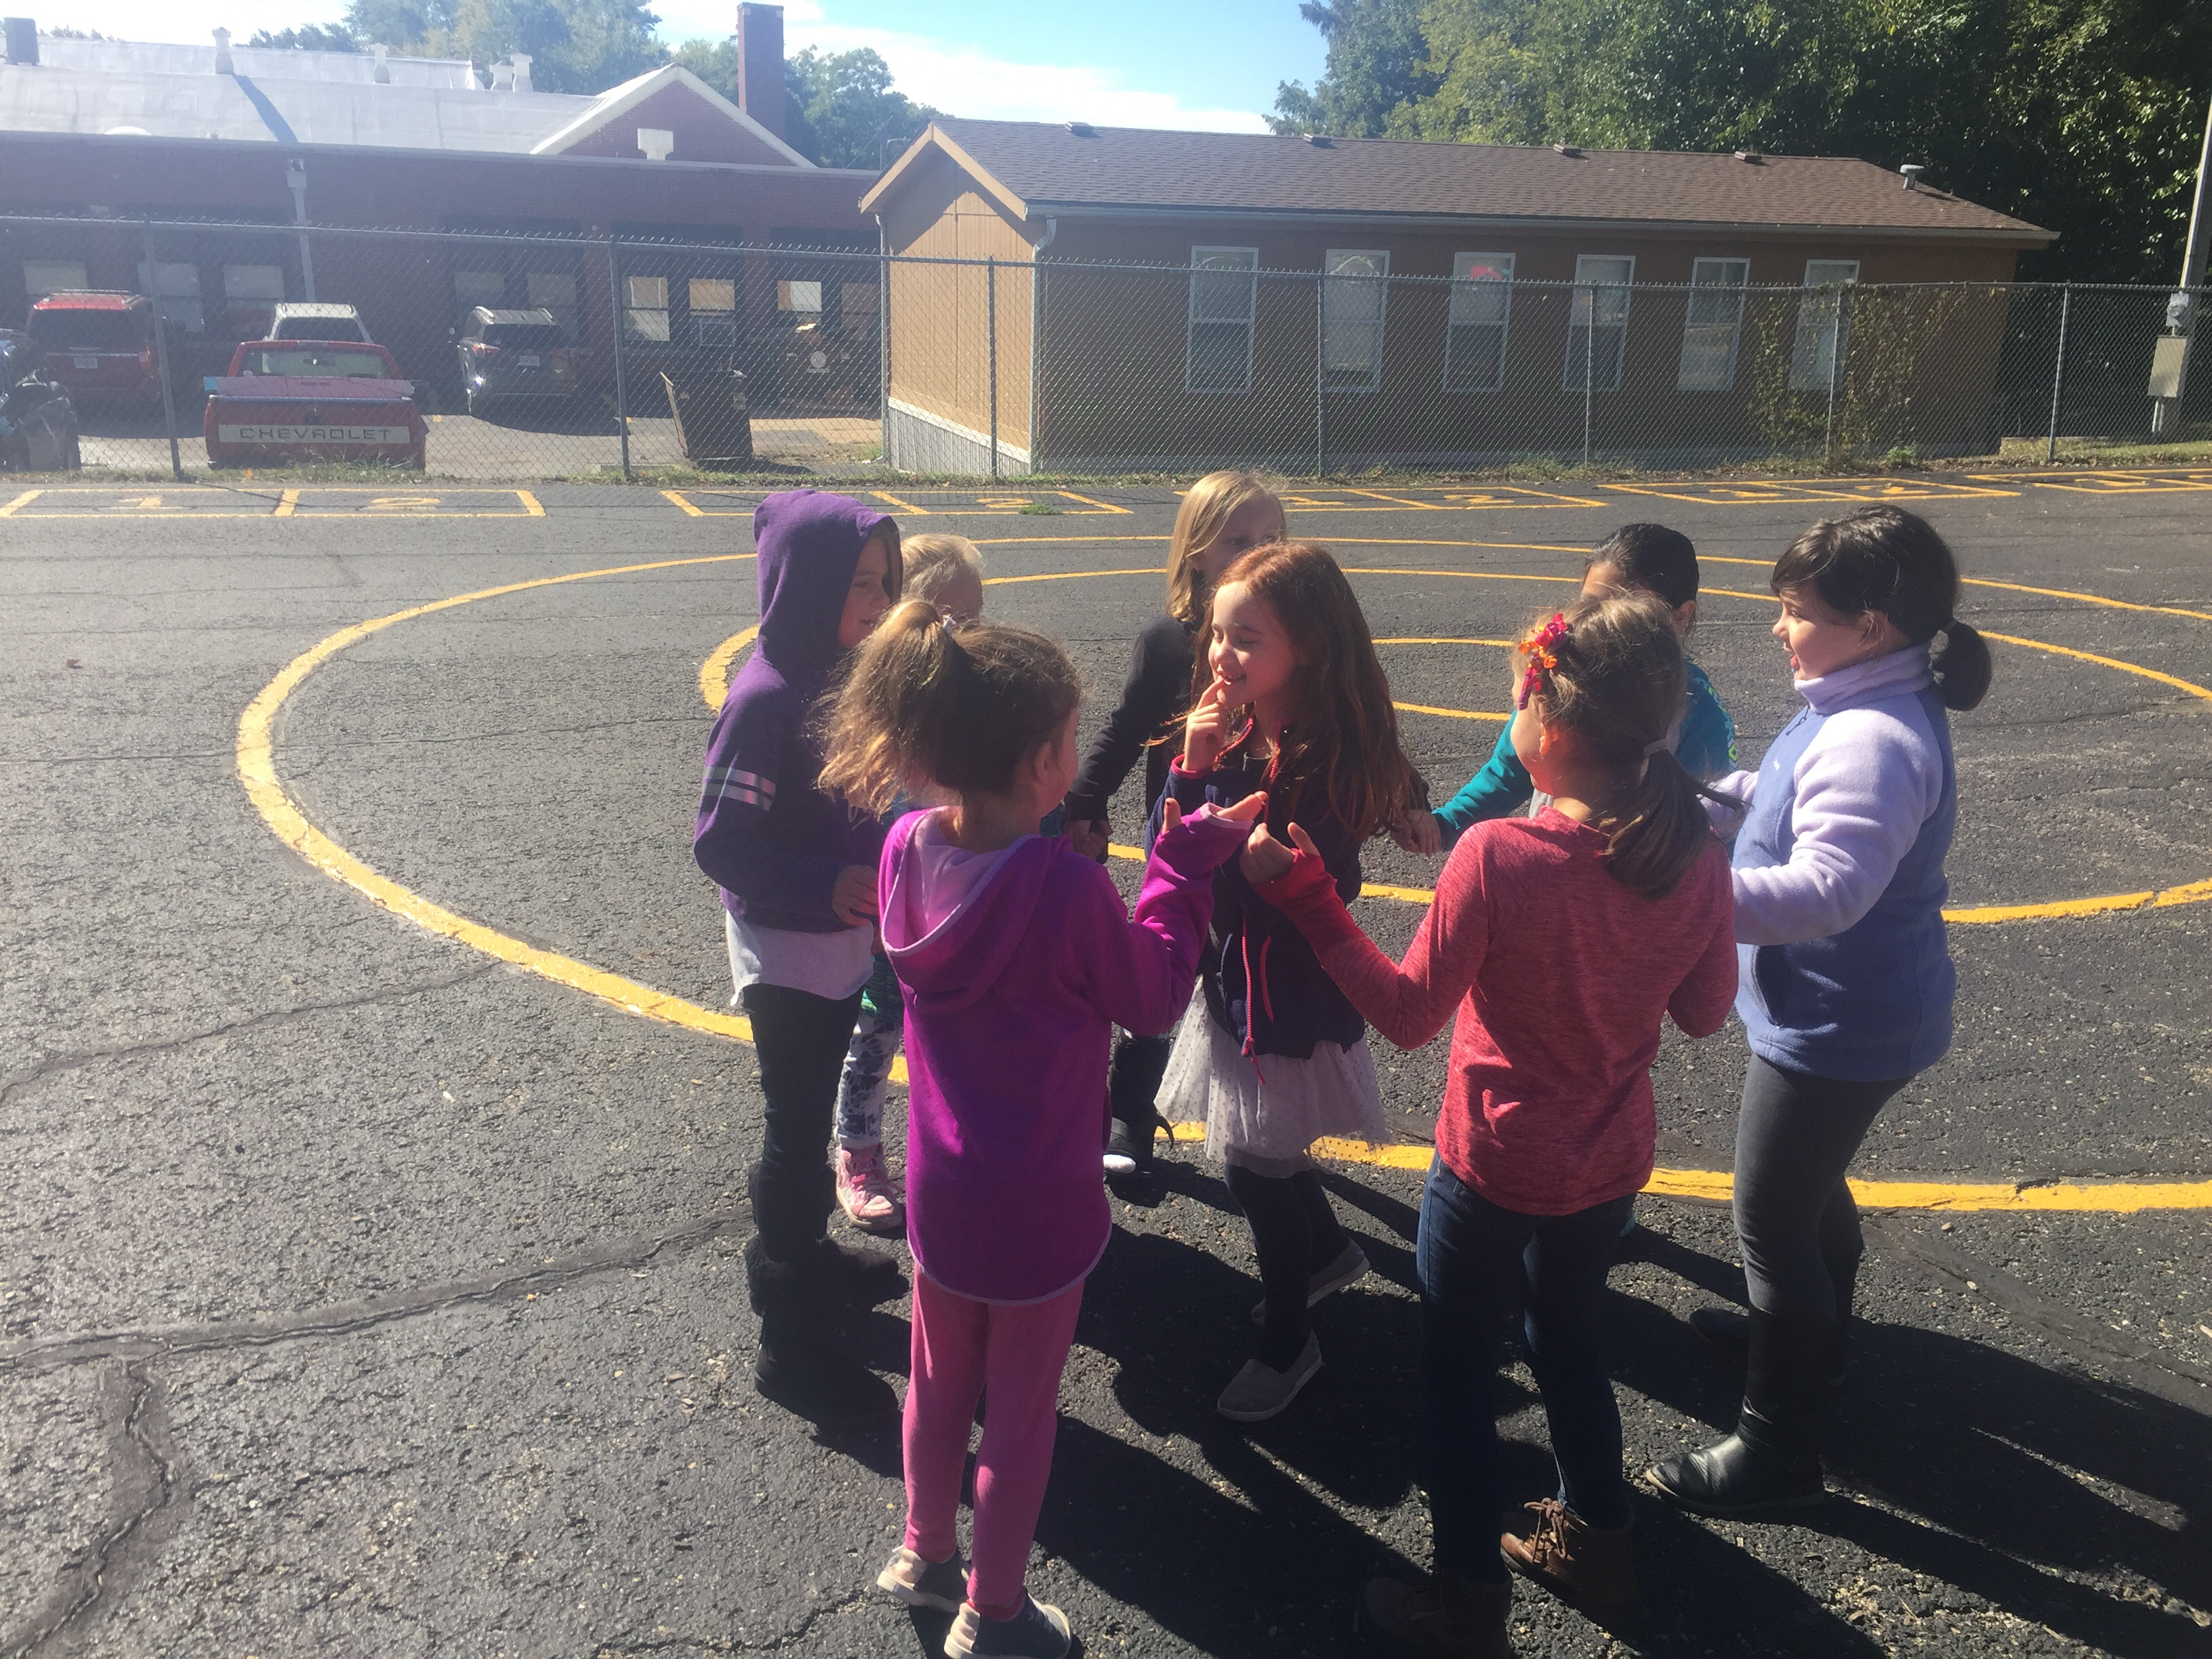 These 1st grade girls are enjoying a fun game of Little Sally Walker on this beautiful fall day!